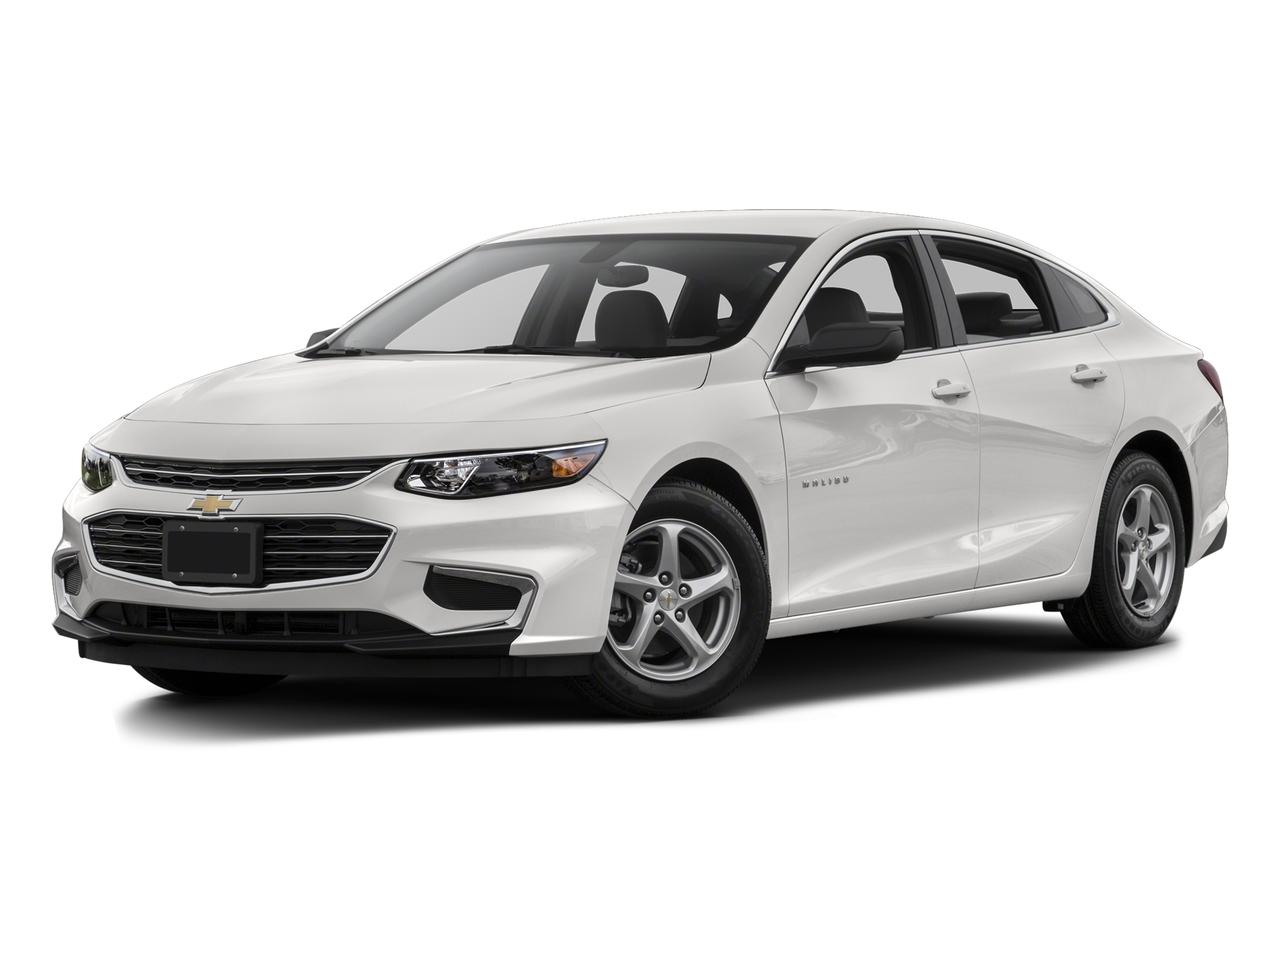 2016 Chevrolet Malibu Vehicle Photo in Elyria, OH 44035